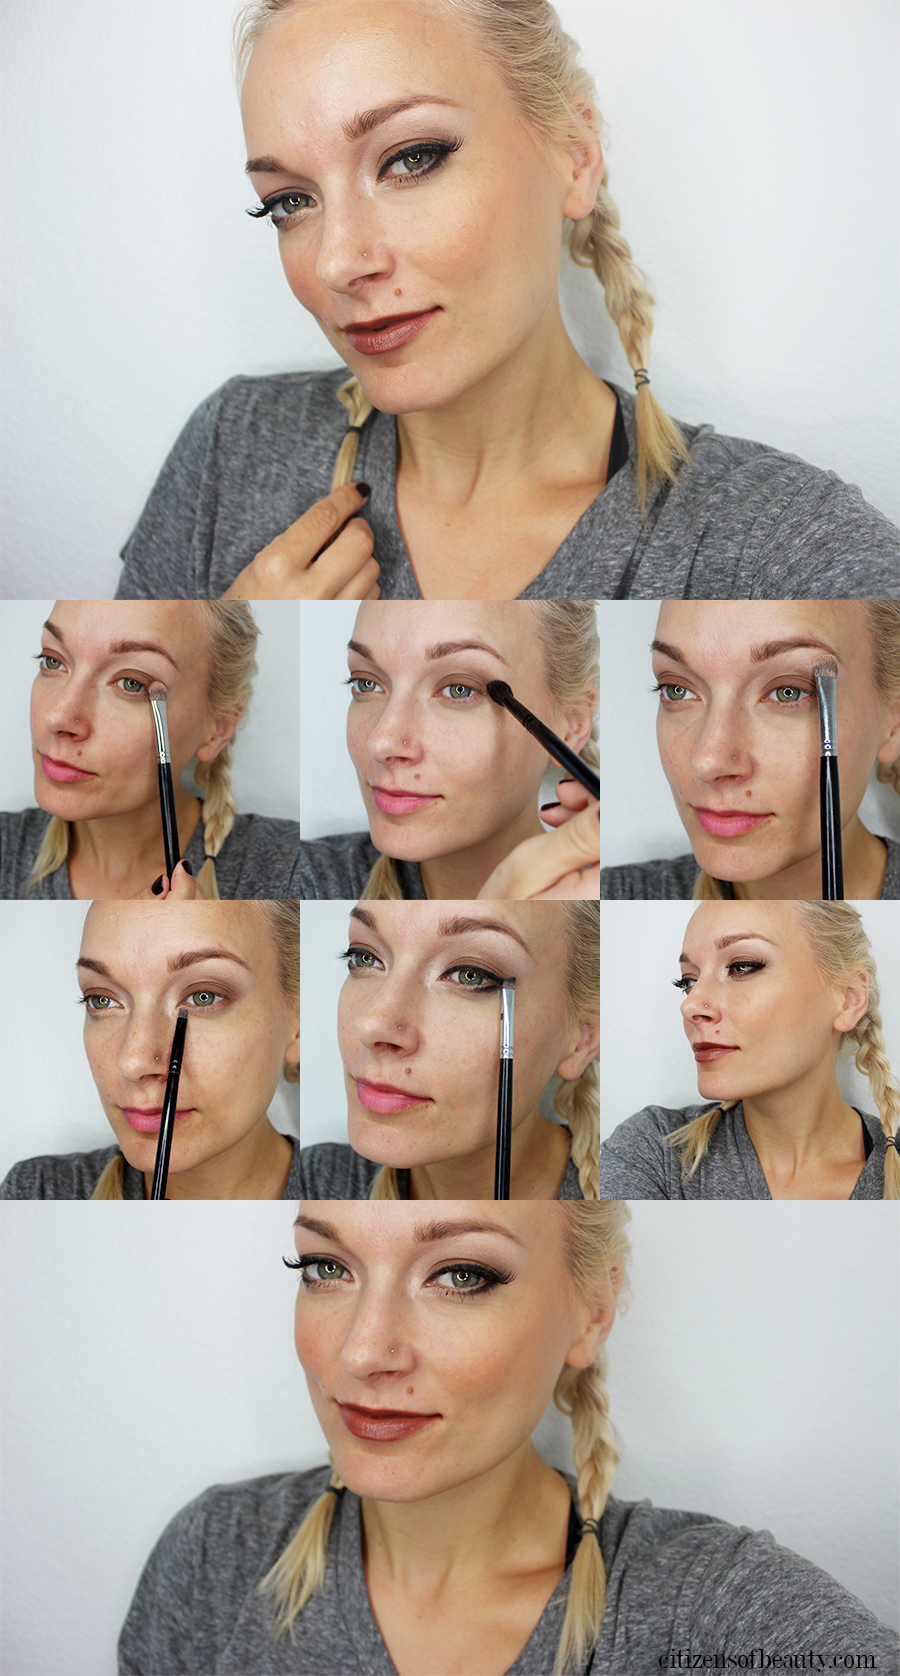 90s-grunge-makeup-look-and-how-to-get-it